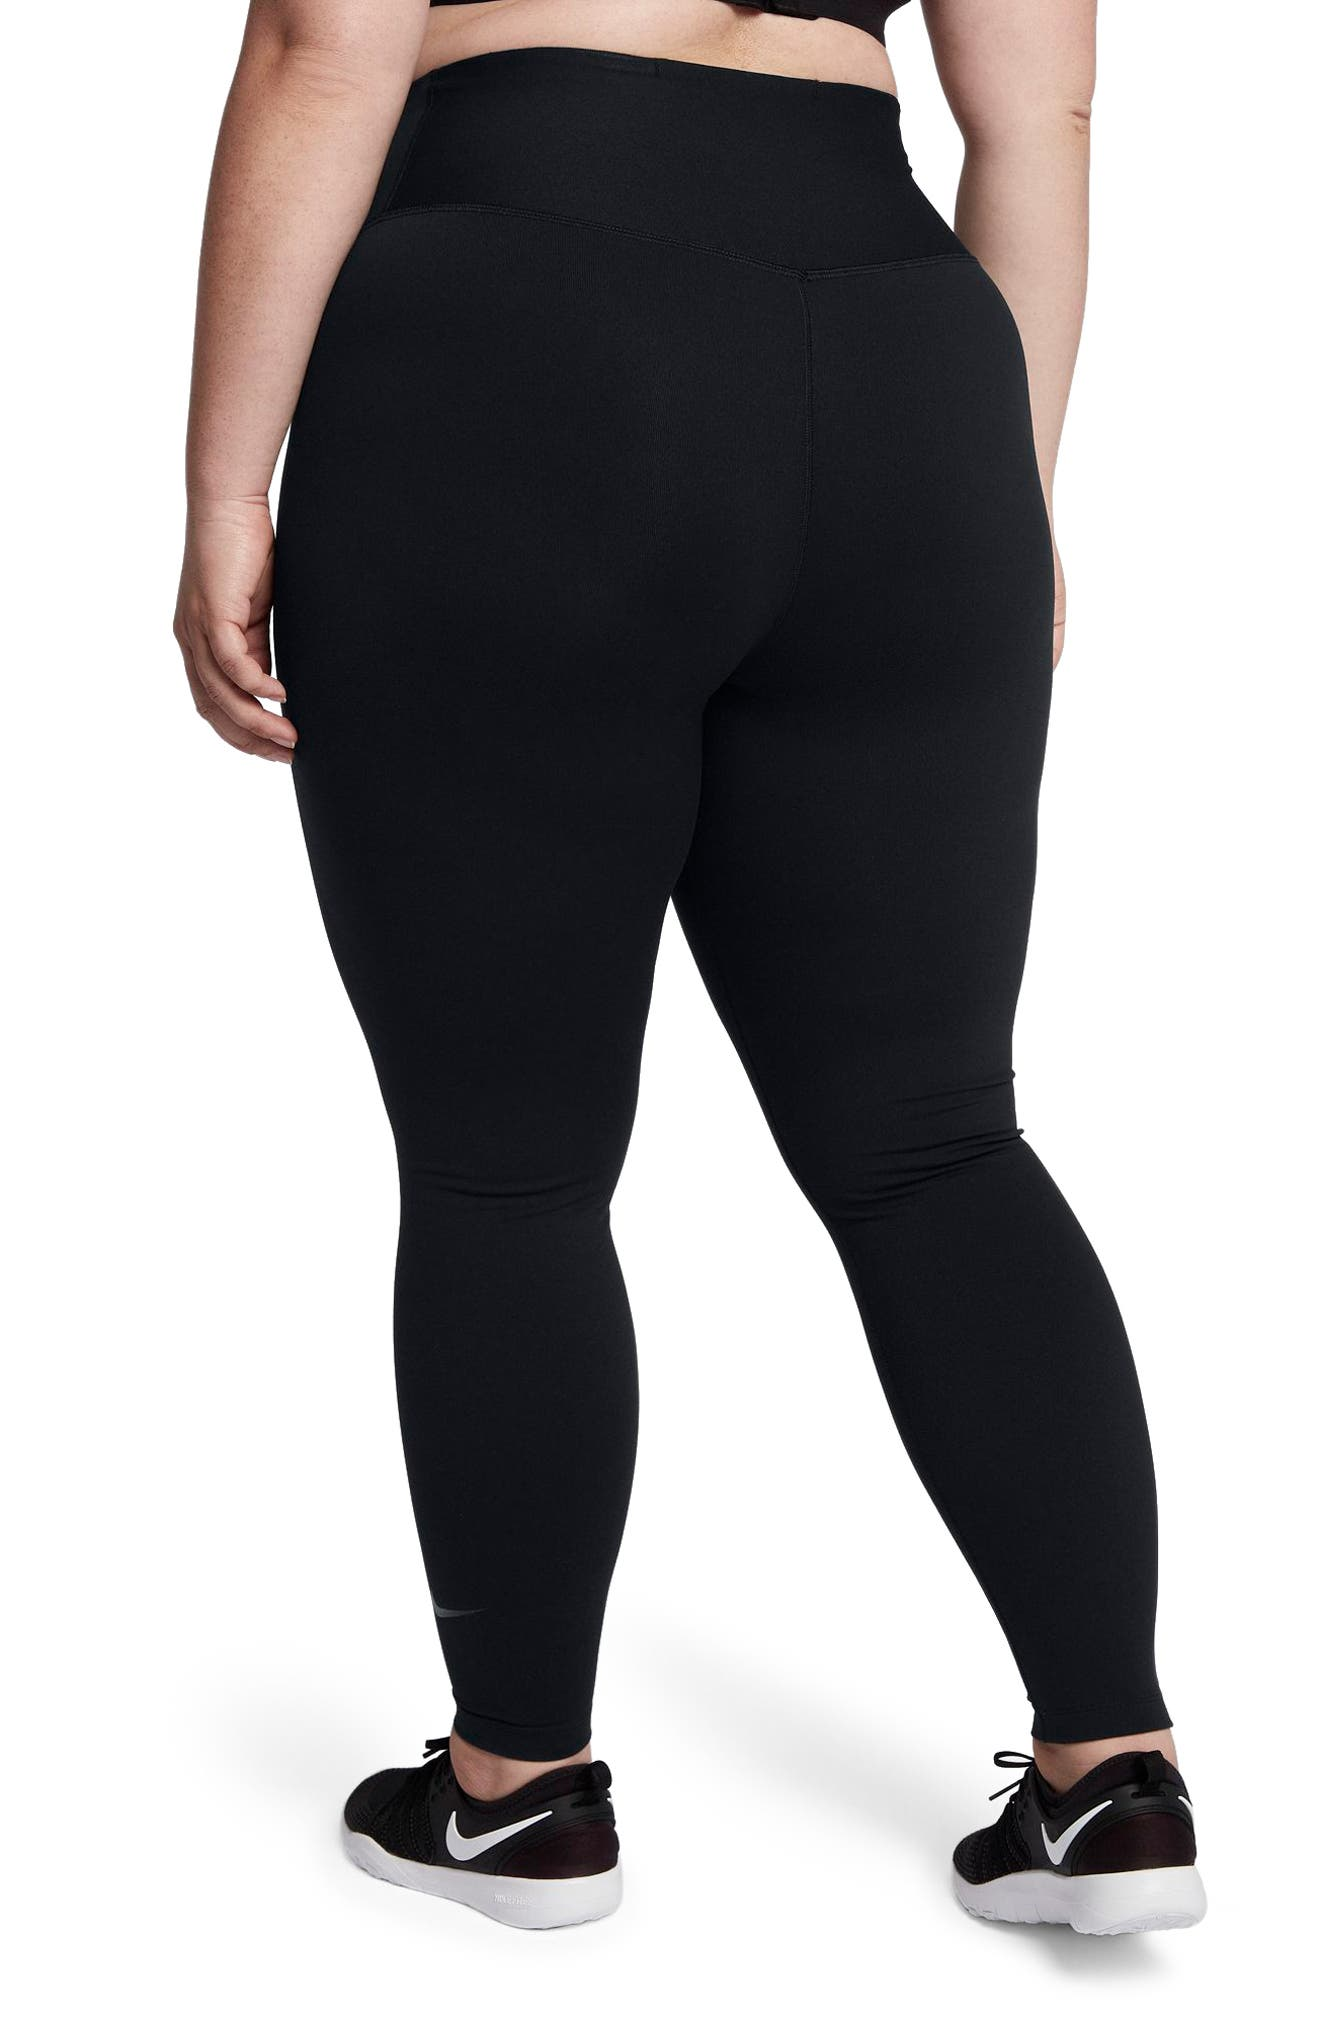 Power Sculpt Training Tights,                             Alternate thumbnail 2, color,